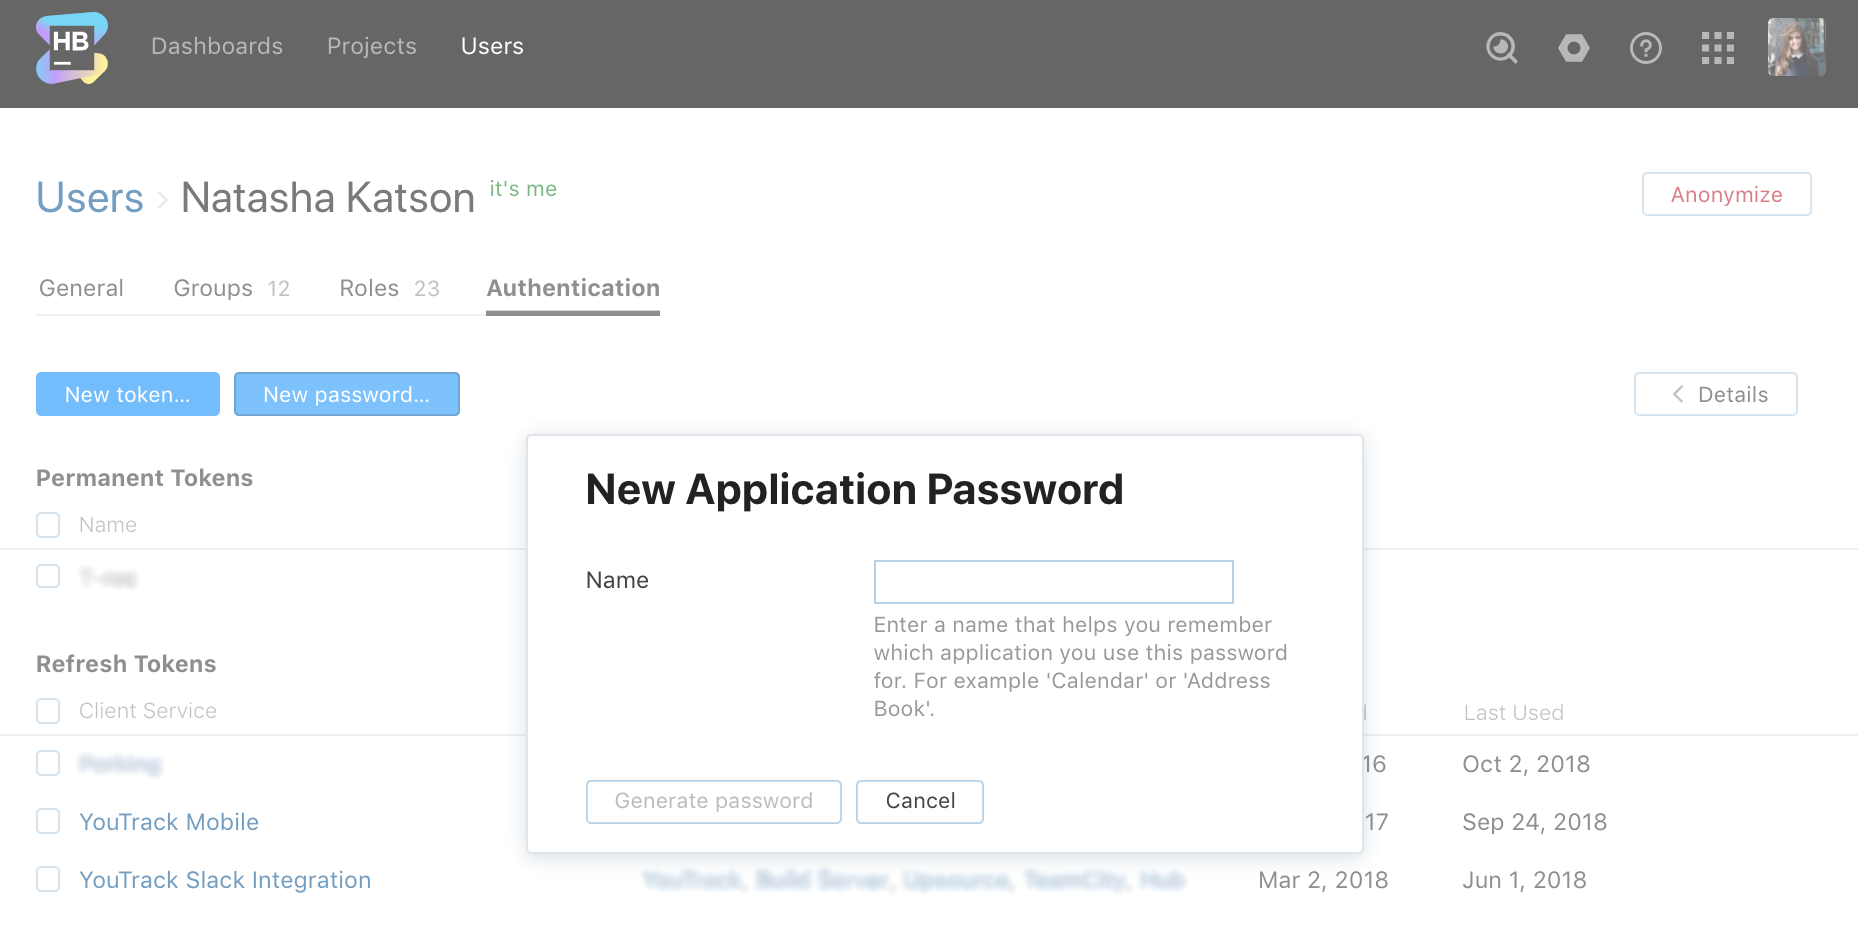 applicatiom_password